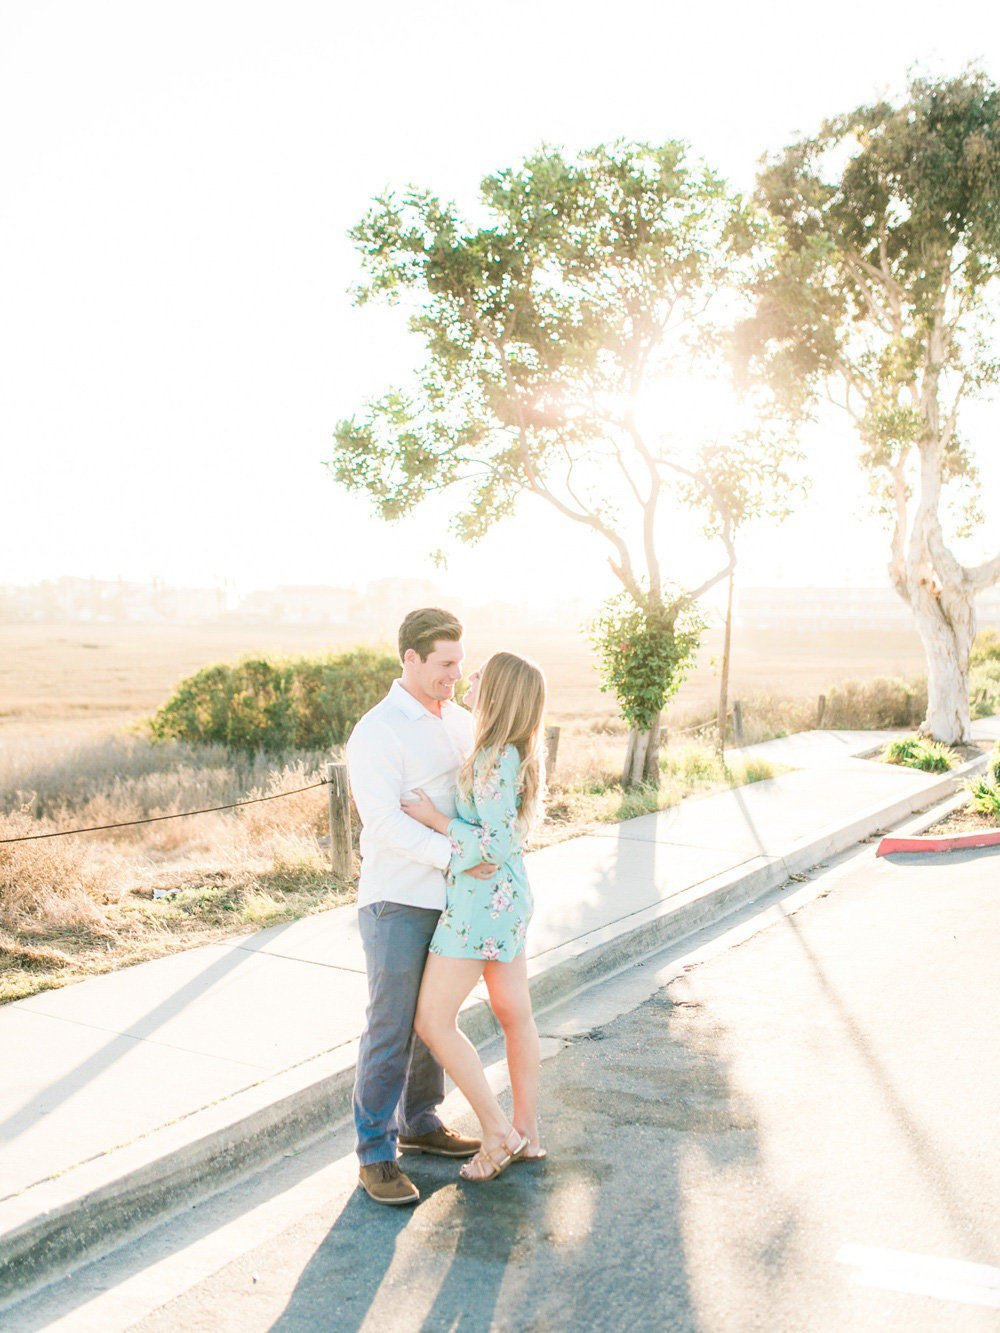 San-Diego-Engagement-Photographer-Mandy-Ford-001